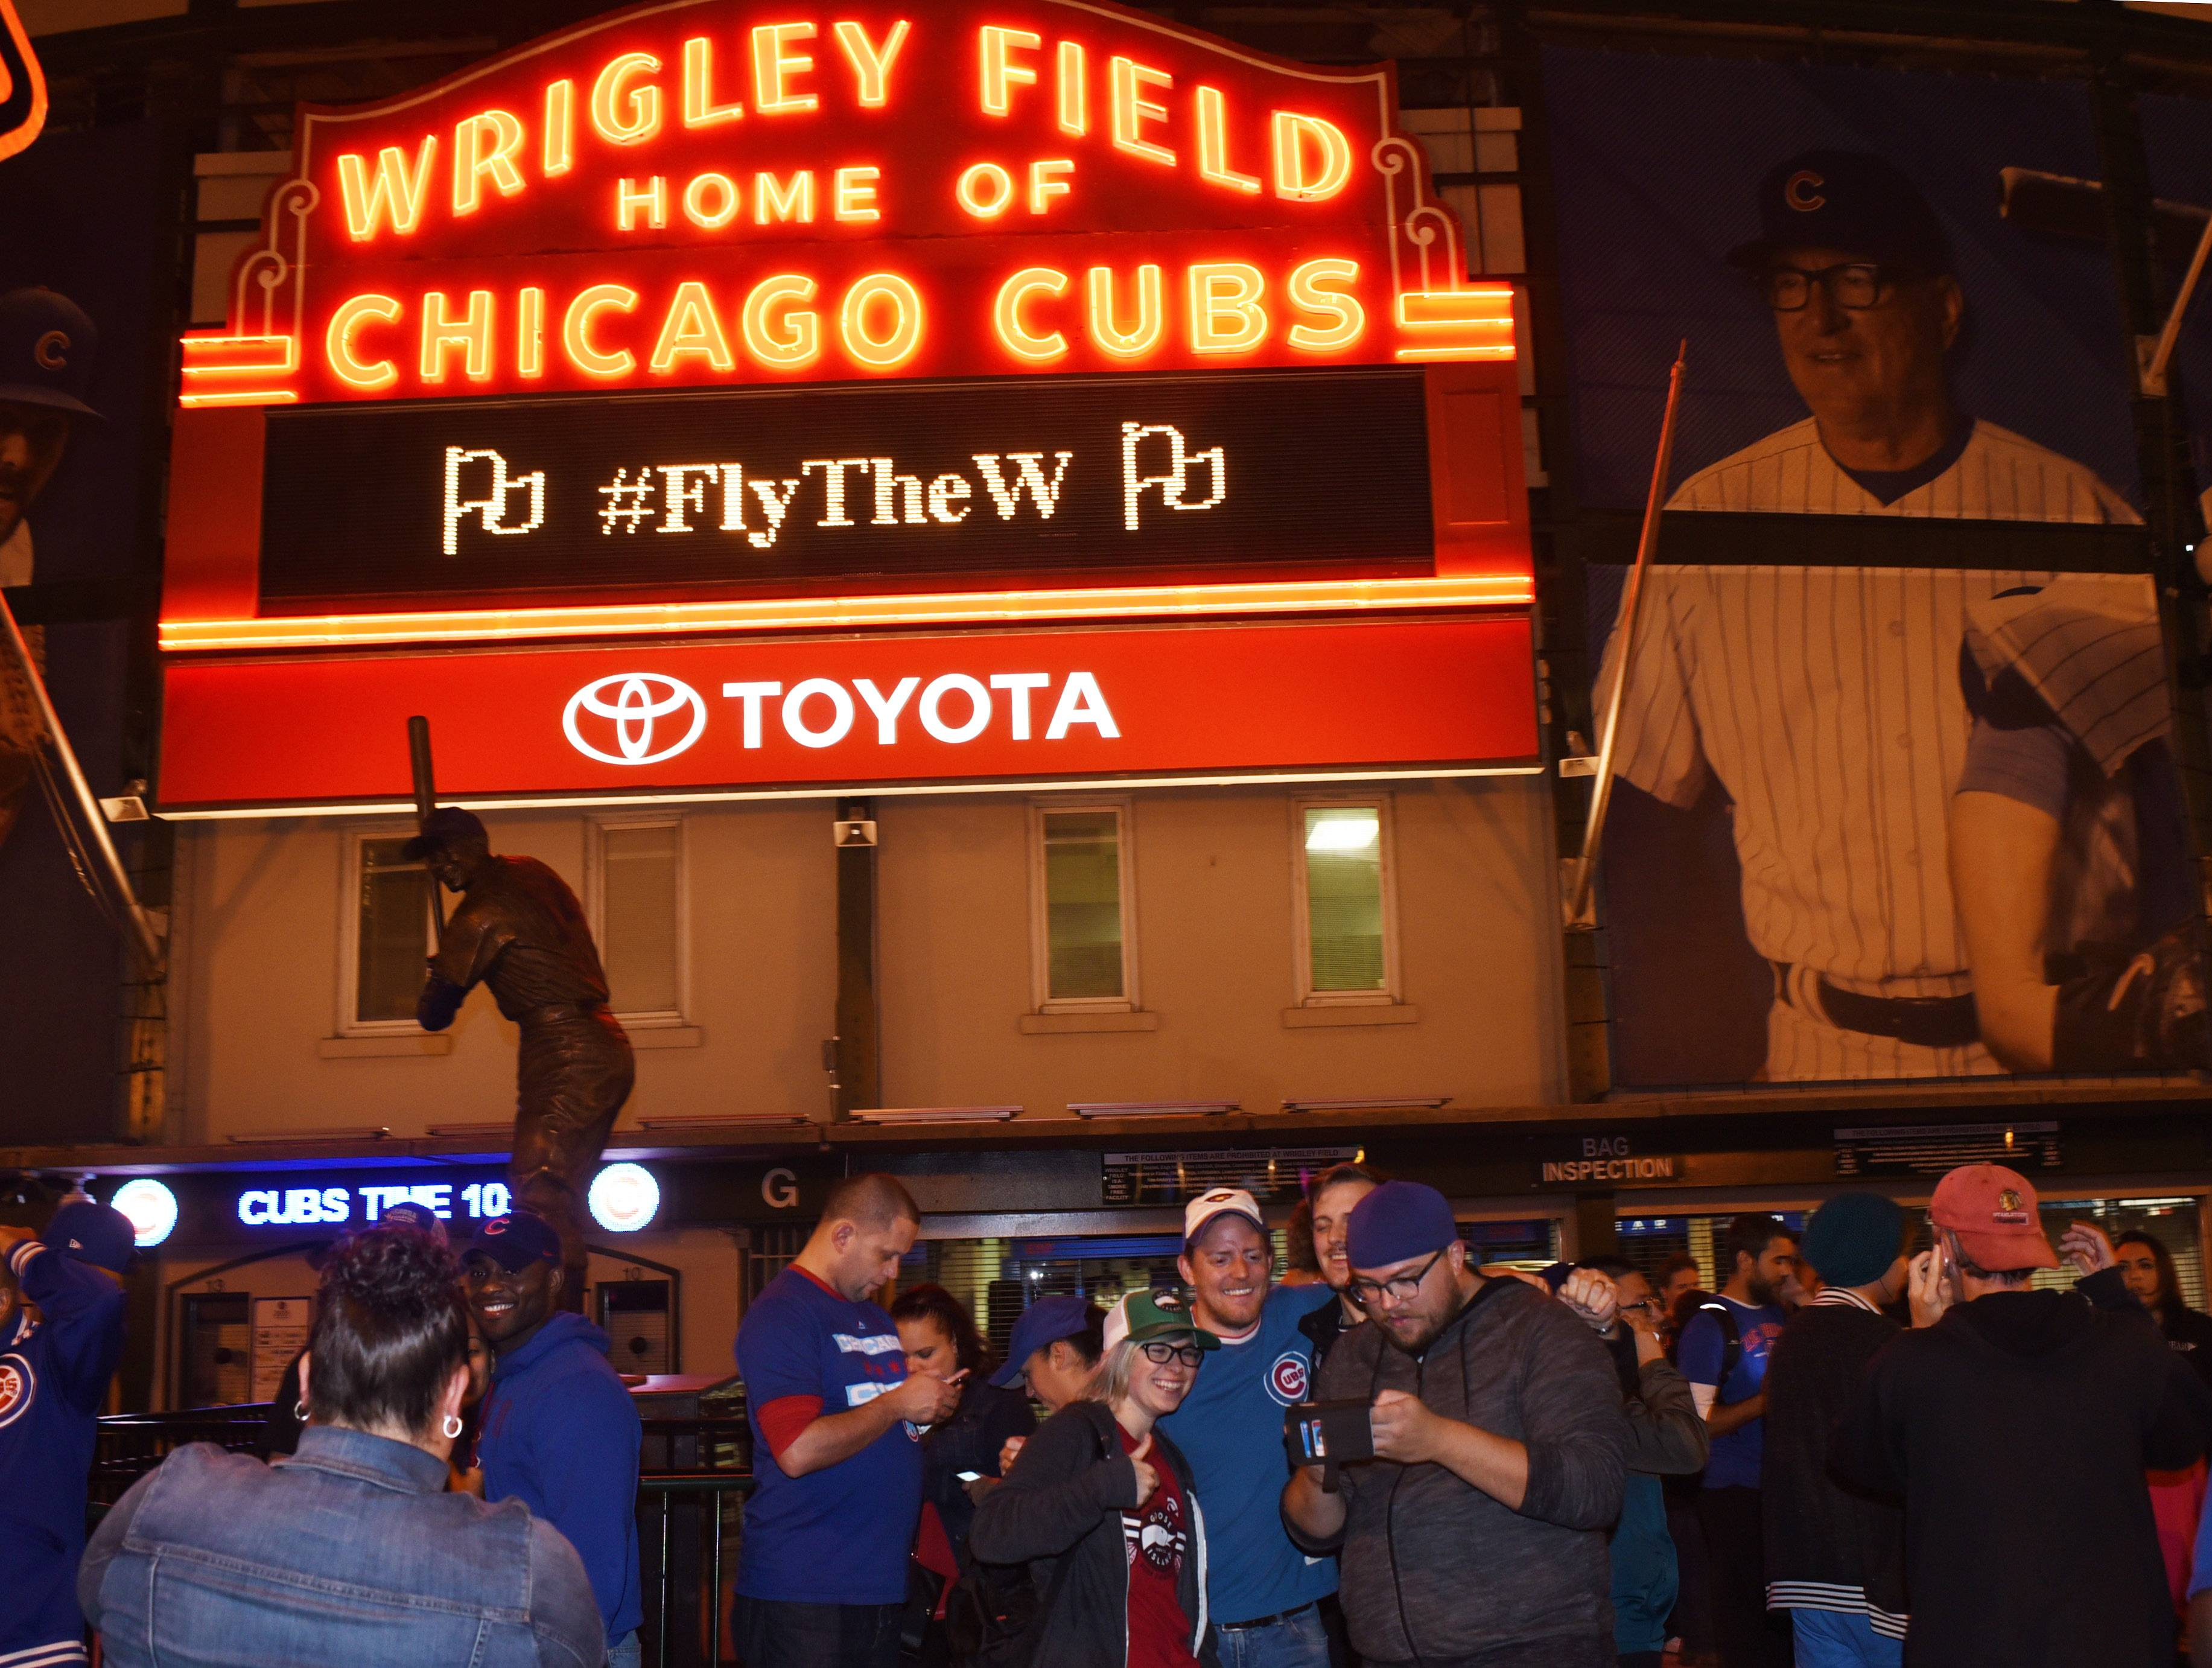 Fans celebrate outside Wrigley Field following the Cubs' win over the Pirates in the National League Wild Card game Wednesday.